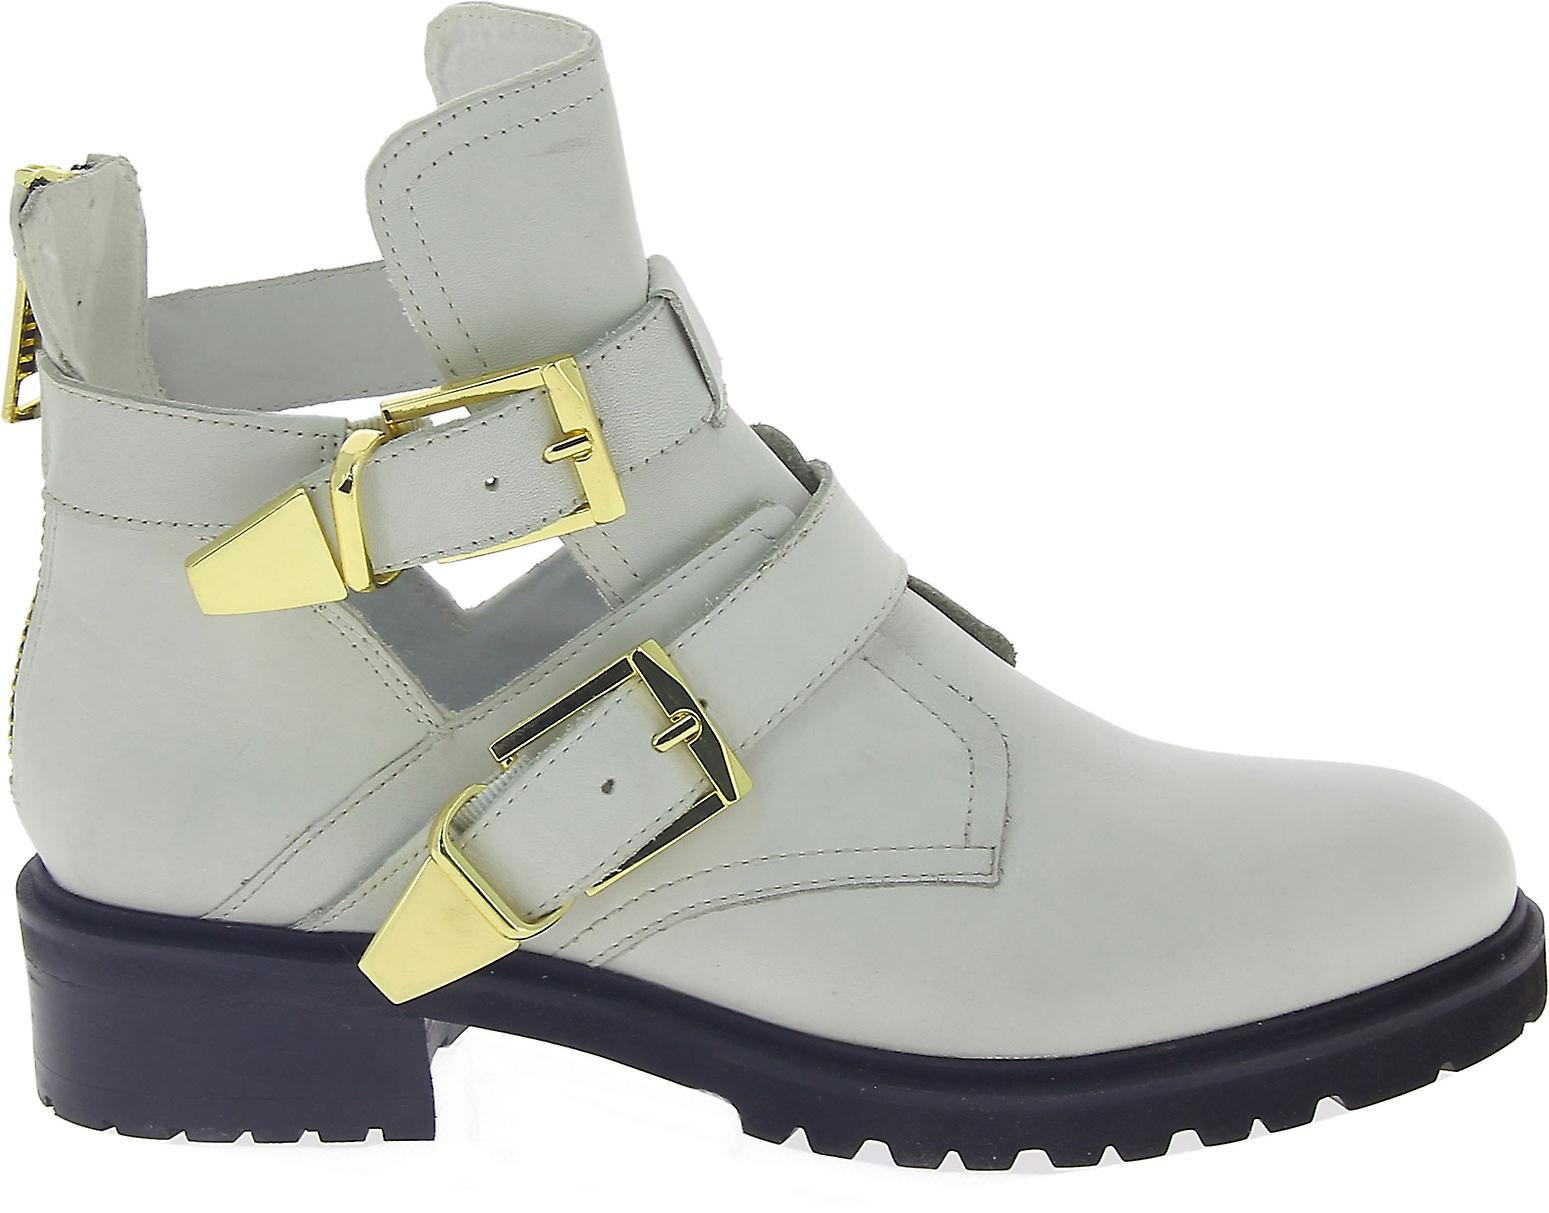 Steve Madden 910005991000102001 Women's White Faux Leather Ankle Boots